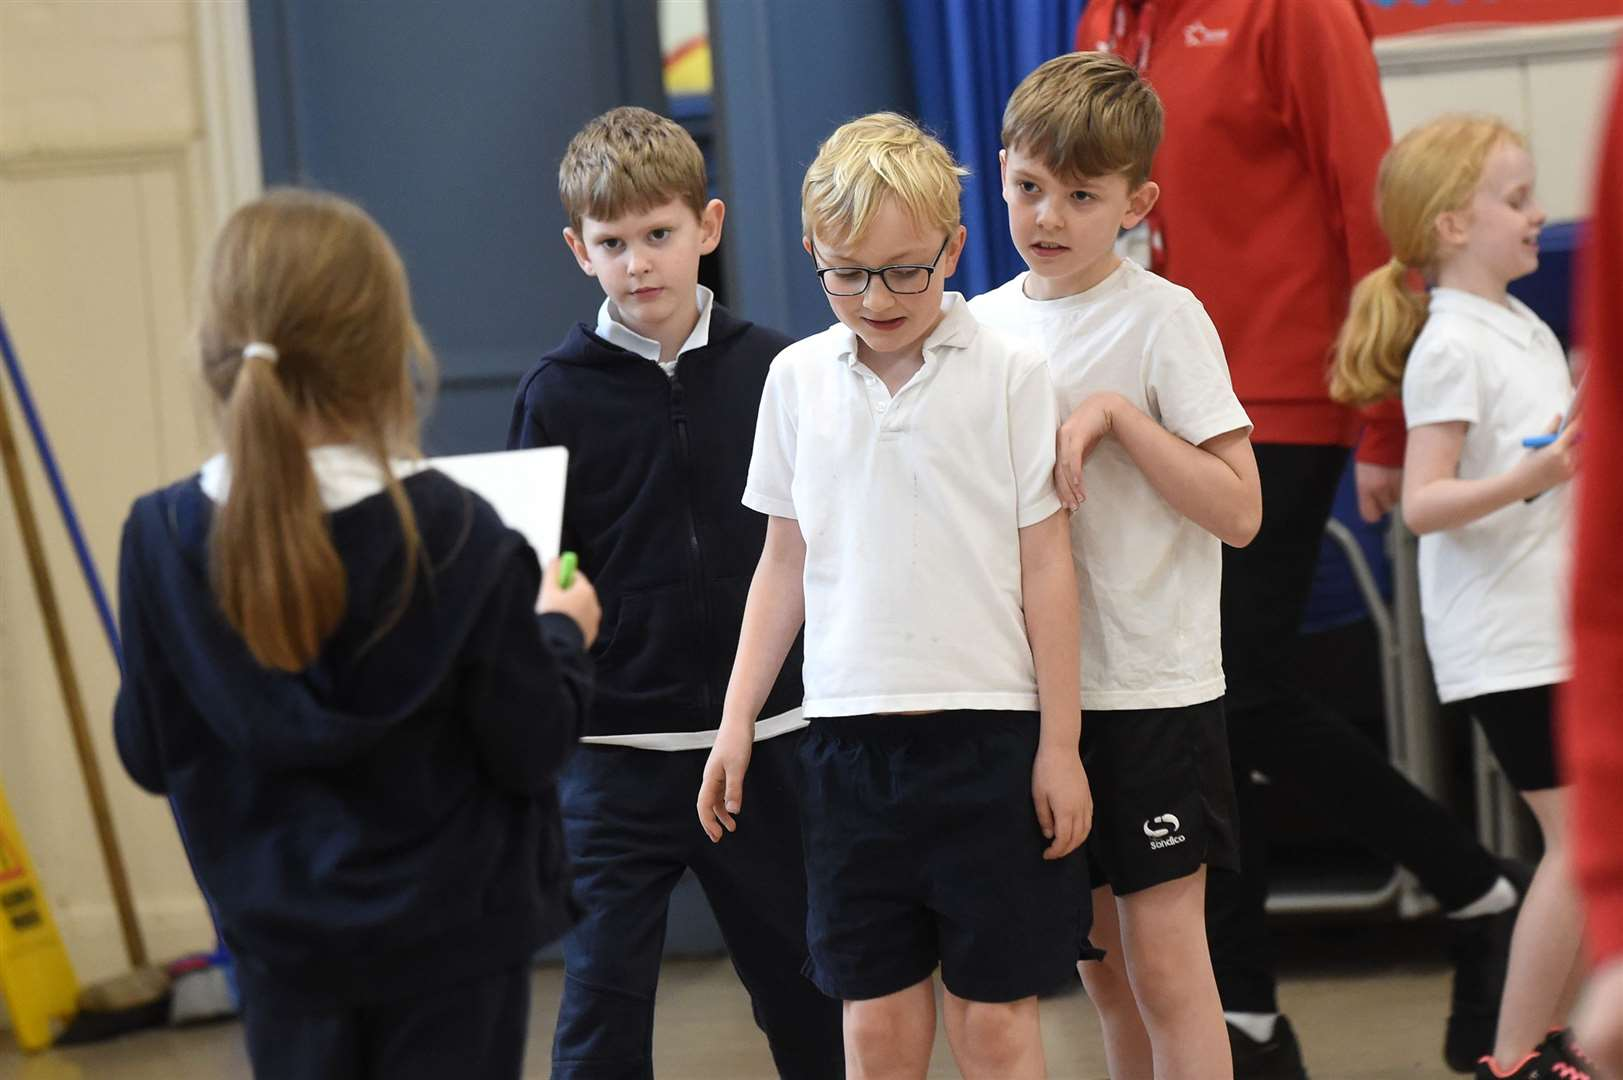 Glemsford Primary Academy staged a sports themed event to encourage youngsters to keep fit...PICTURE: Mecha Morton .... (22635385)